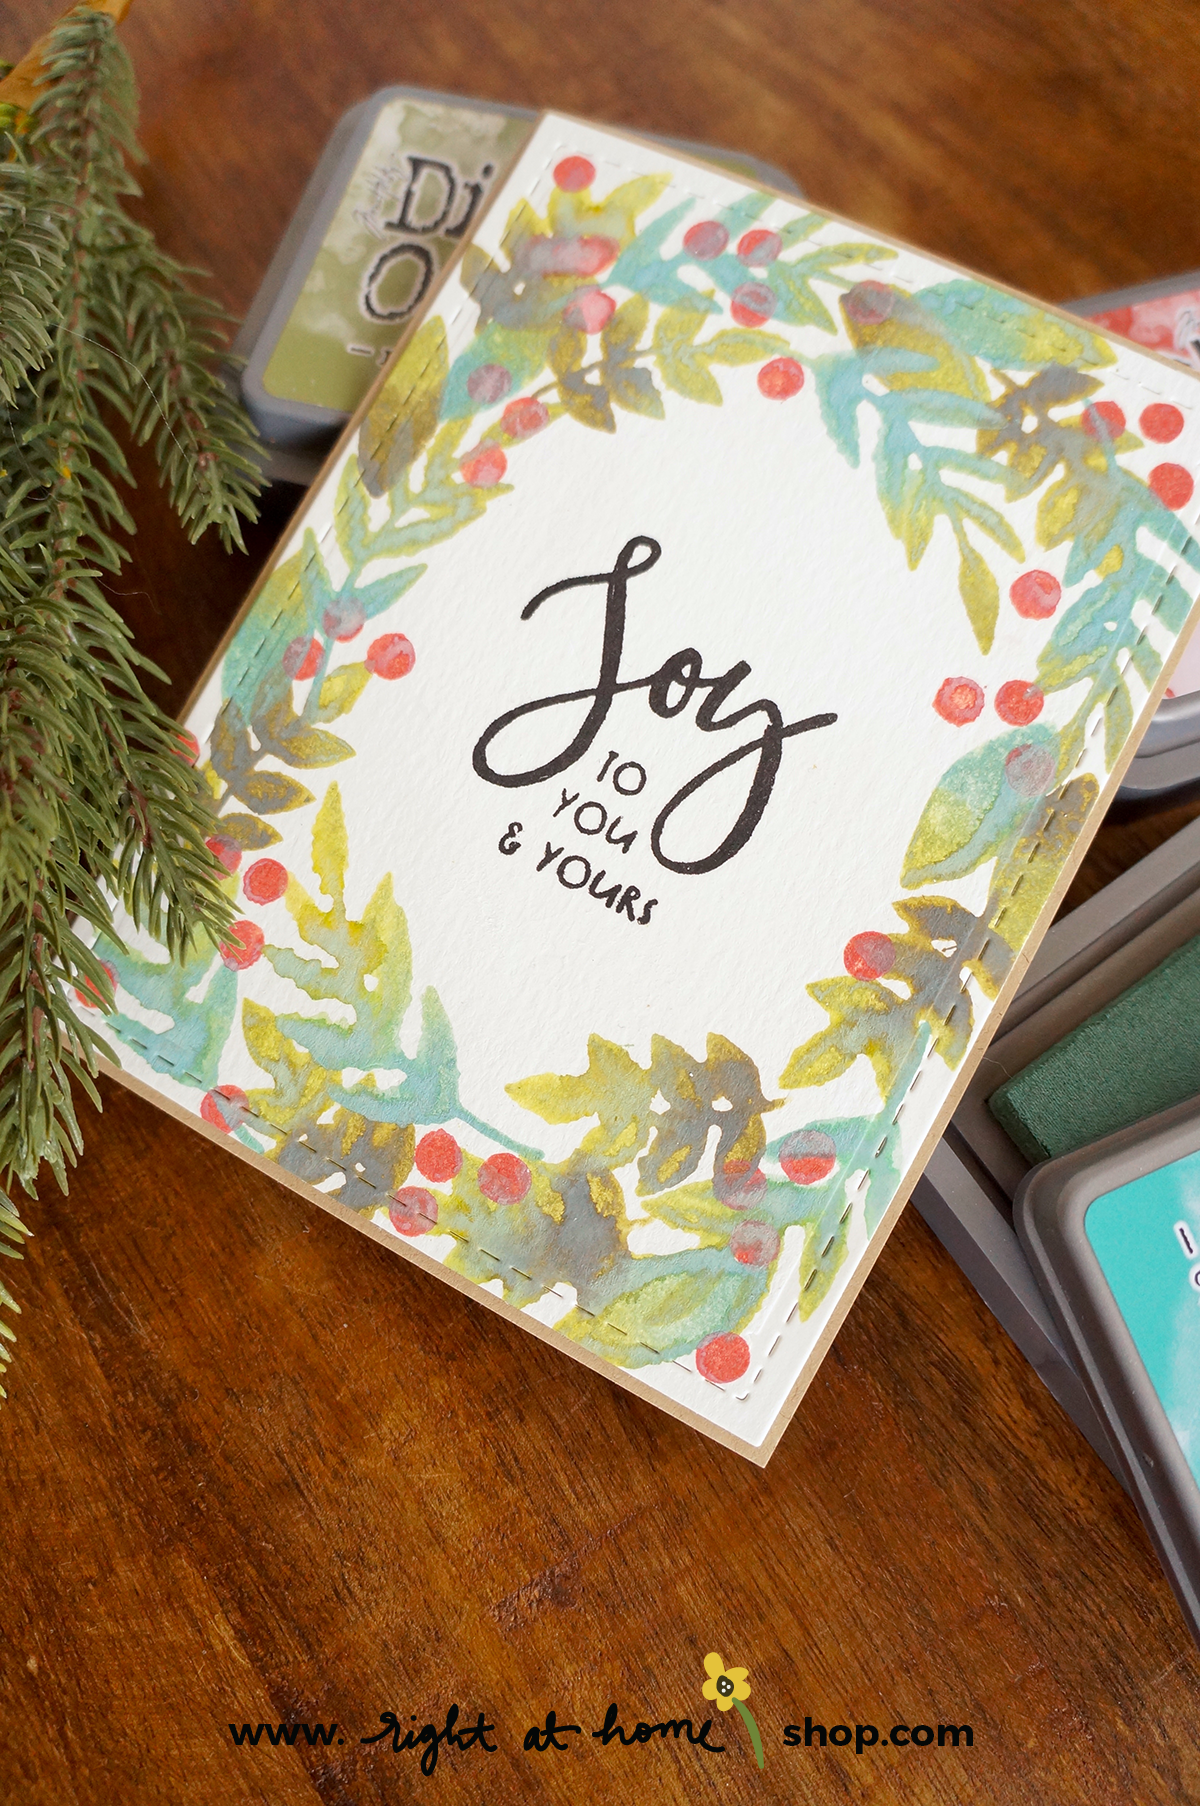 Click to view this Joy holiday card created using the Right at Home Freshly Picked and Brushstroke Alphabet stamp sets. Includes watercolor-inspired stamping using Ranger Tim Holtz Distress Oxide inks. Card design inspired by  Wonder Forest.  All details on www.rightathomeshop.com/blog.